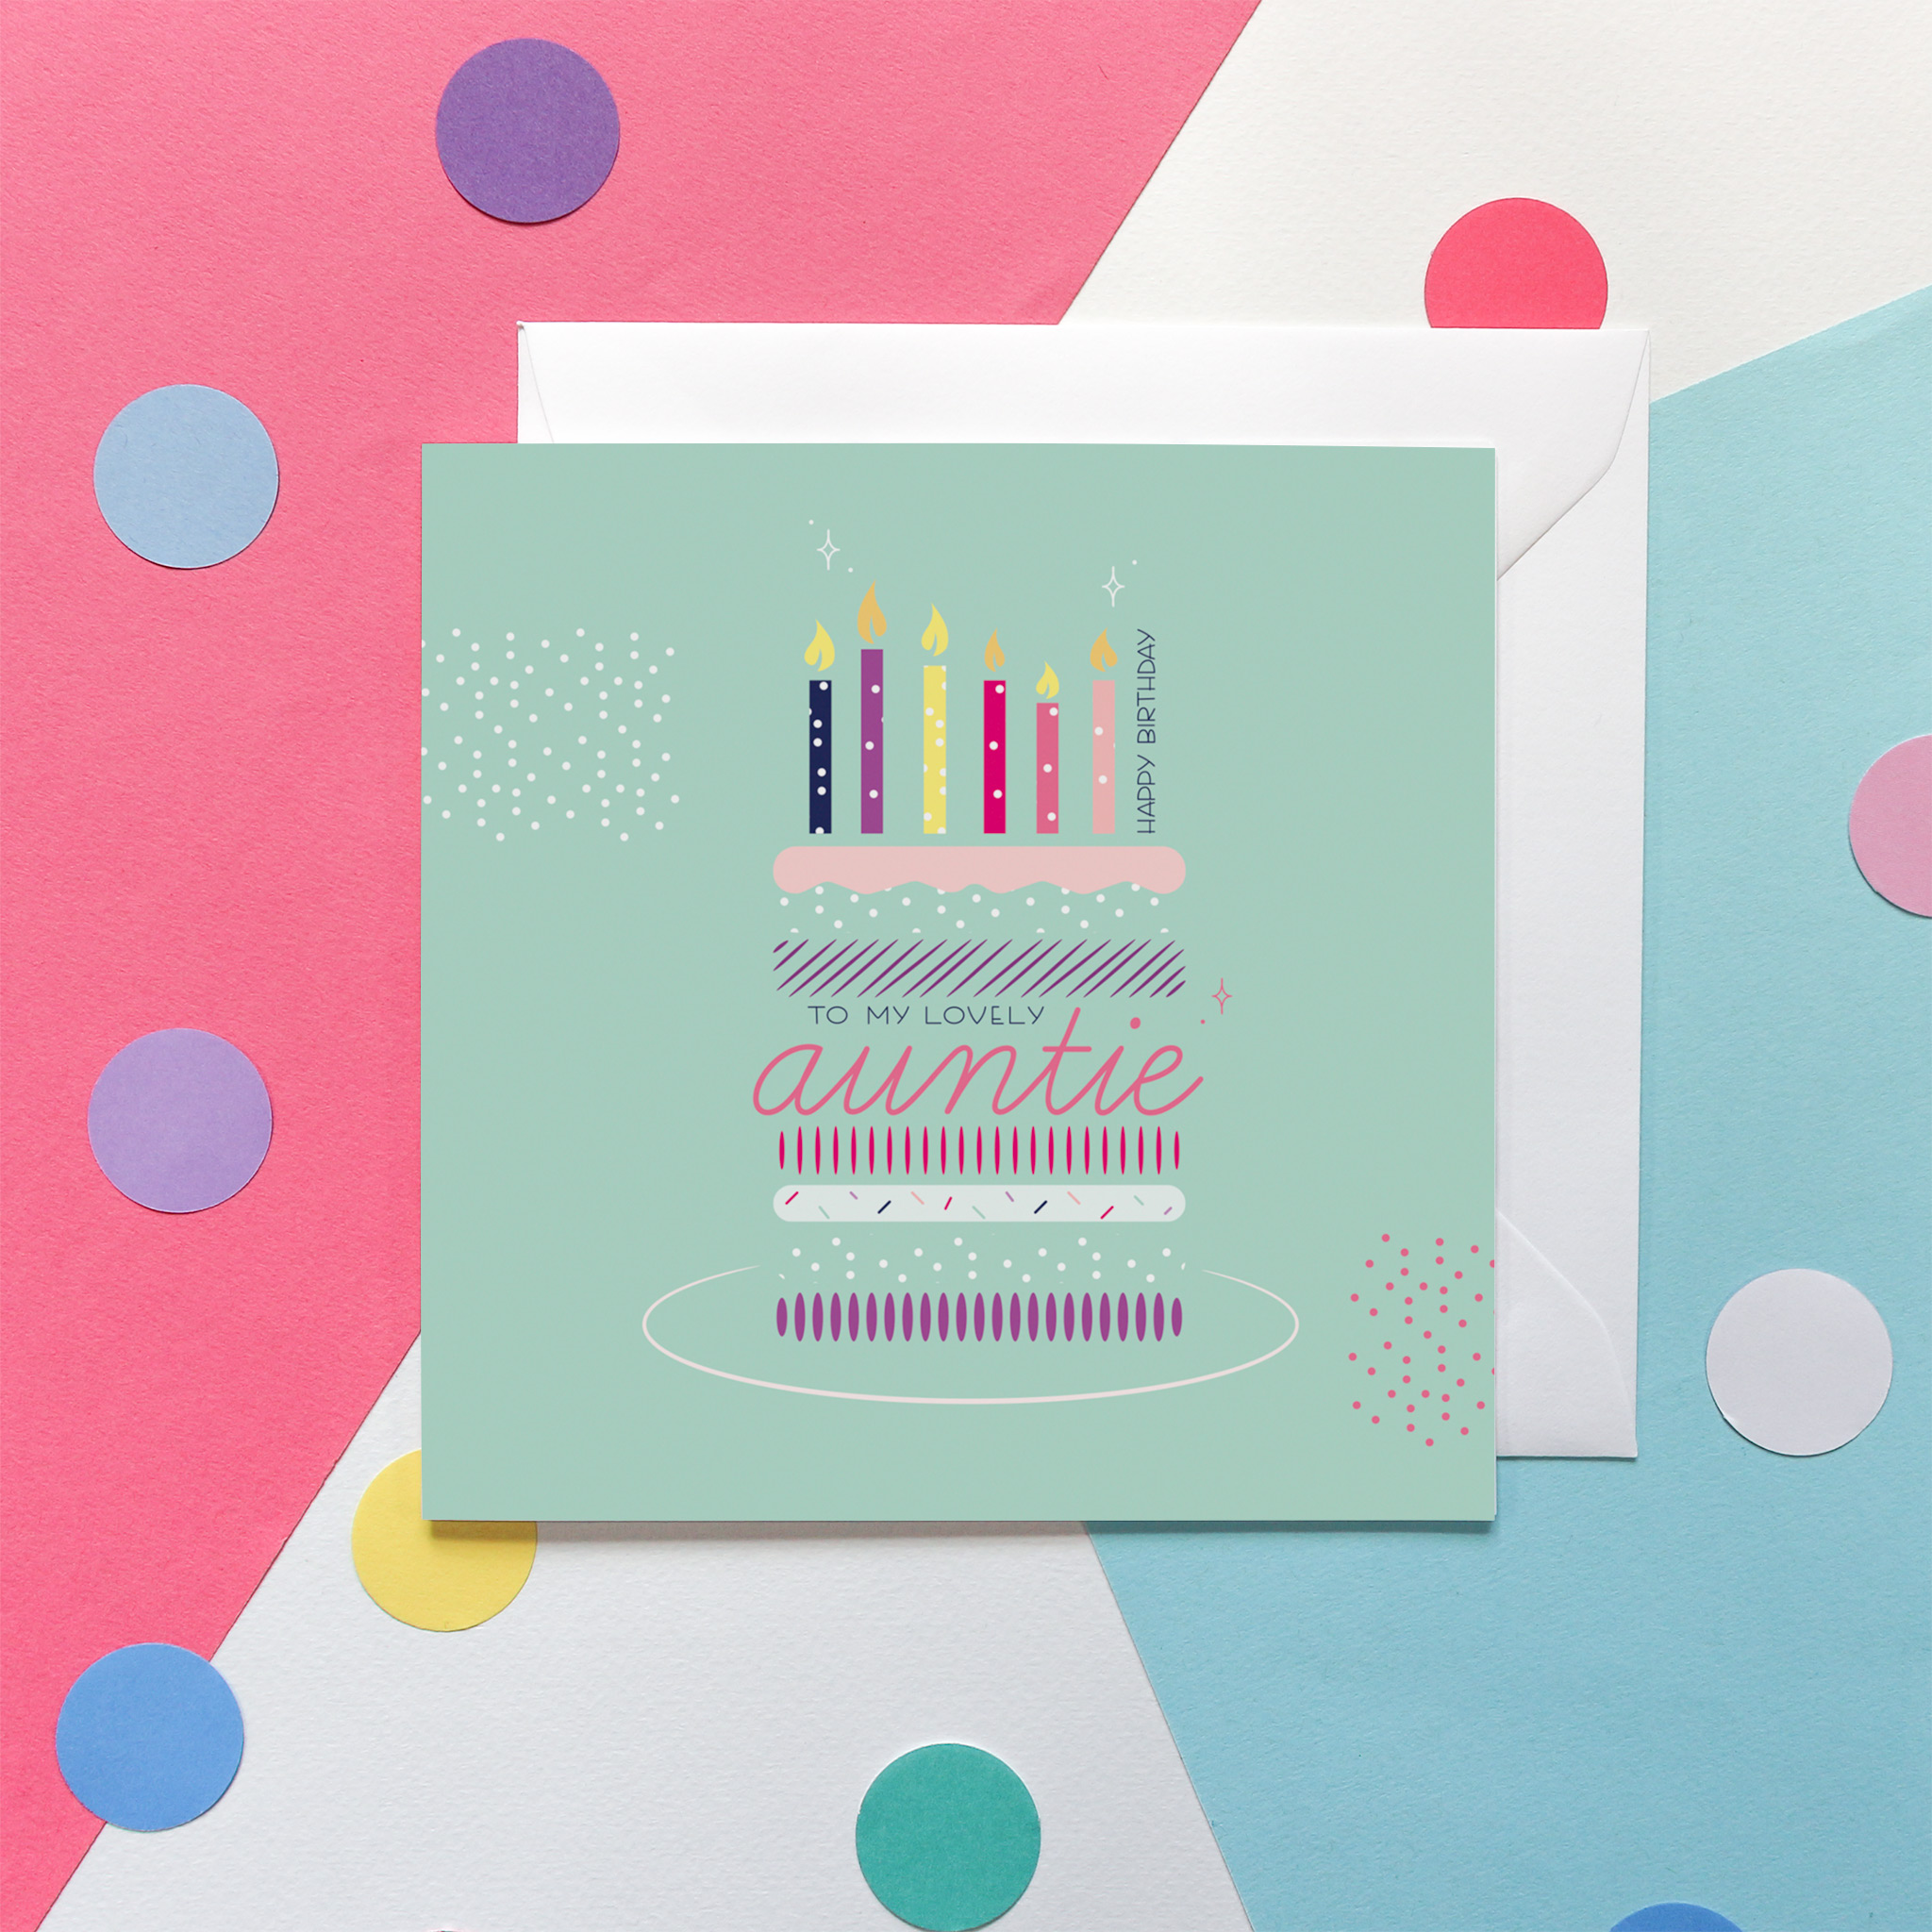 """Photo of a Birthday Card. The design shows a stylised colourful birthday cake with the words """"Happy Birthday...to my lovely Auntie"""" and seven birthday candles. The background of the card is navy blue and the design is in pinks, purples, mint green and yellows. It is set against a pink, white and blue background and colourful confetti."""